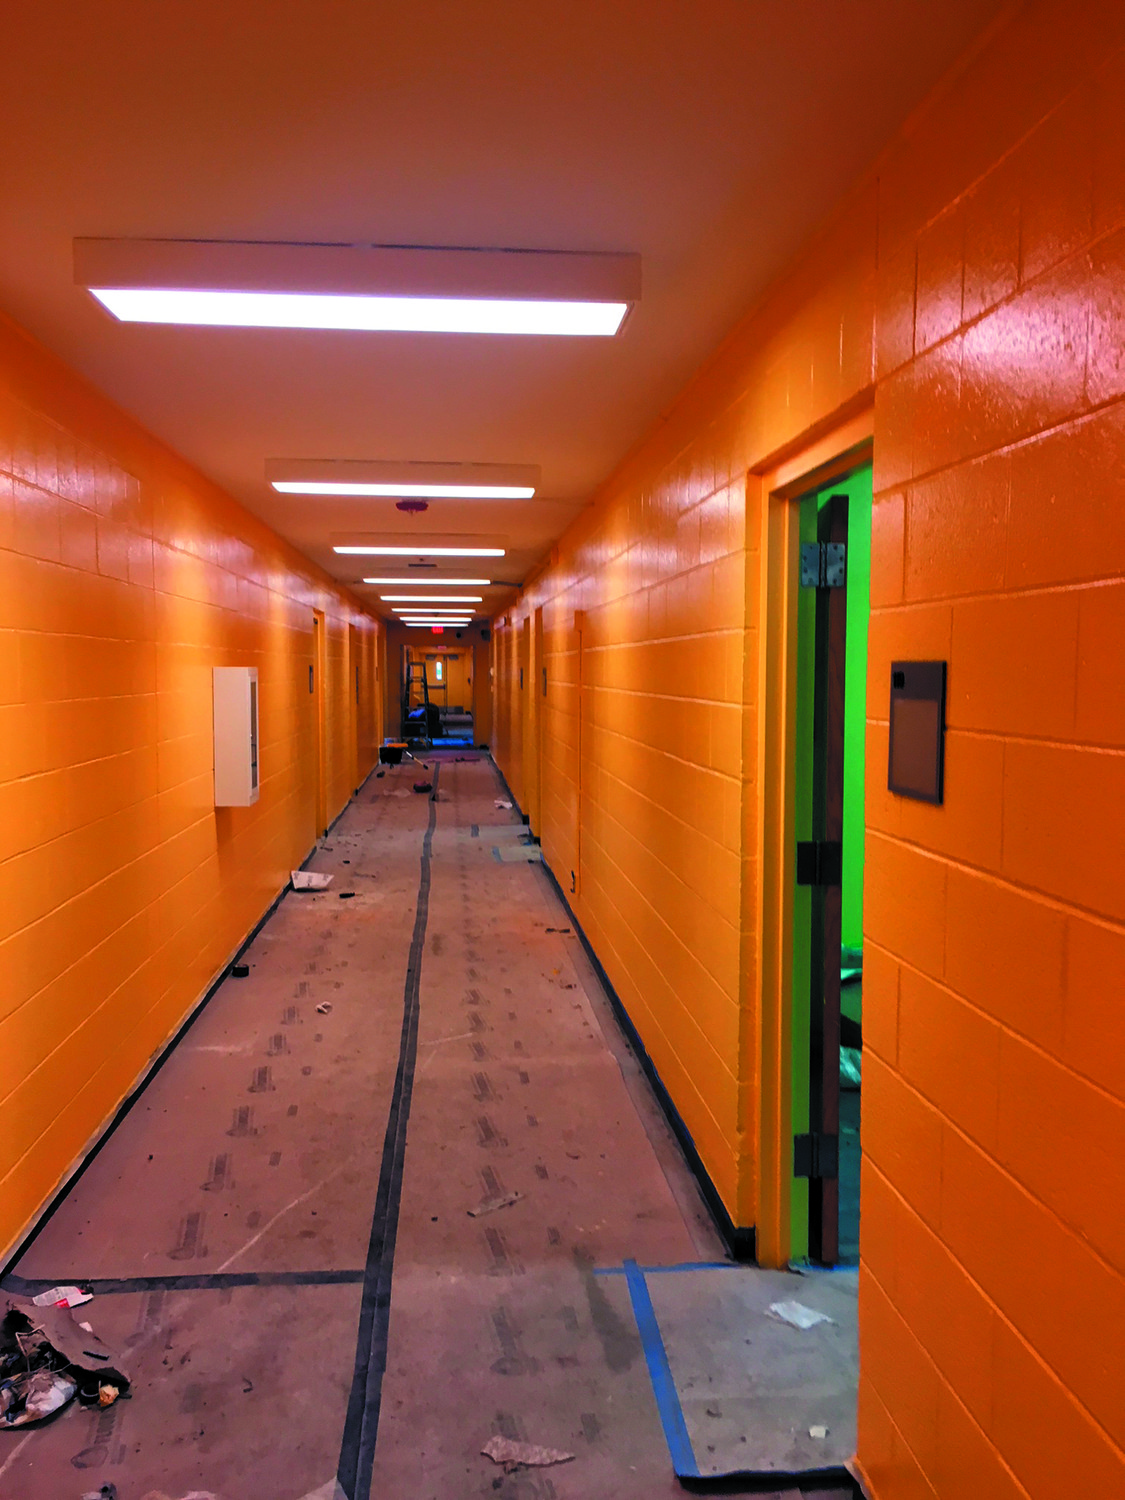 FOLLOW THE YELLOW BRICKED HALL: A bright shade of yellow adorns the main hallway walls of the new branch of the Warwick Boys & Girls Club. The colors were chosen to be kid-friendly.